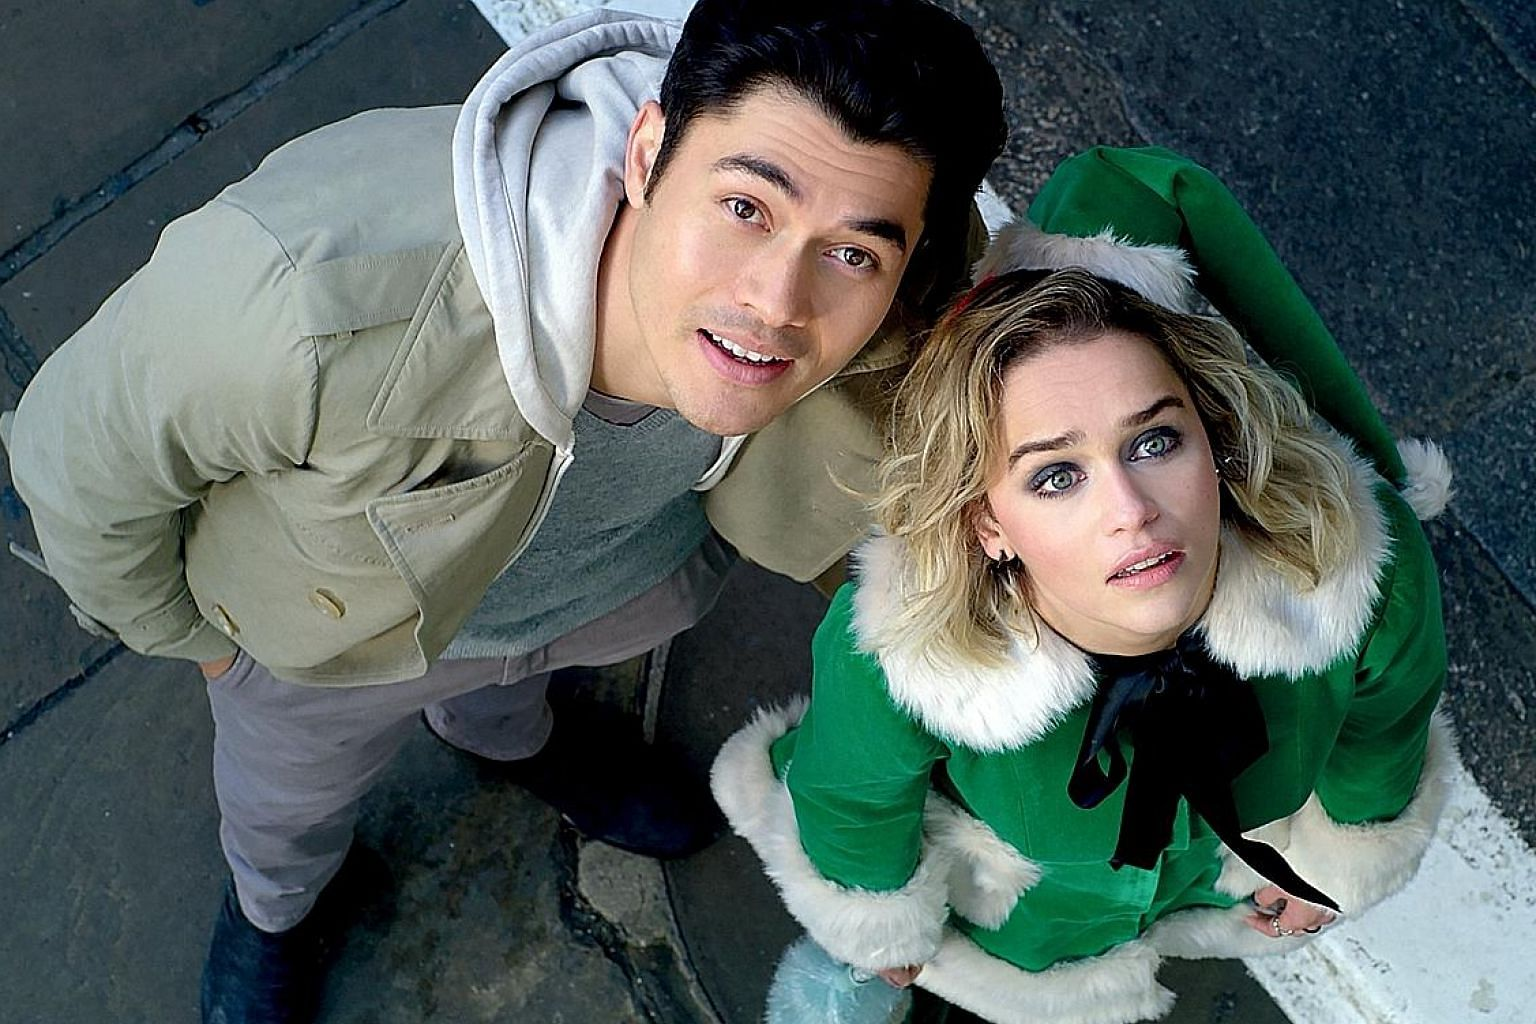 In Last Christmas, Emilia Clarke's character Kate, who hates her job working as an elf in a year-round Christmas shop, meets Tom (Henry Golding, both left) and is prodded into looking at the world differently.